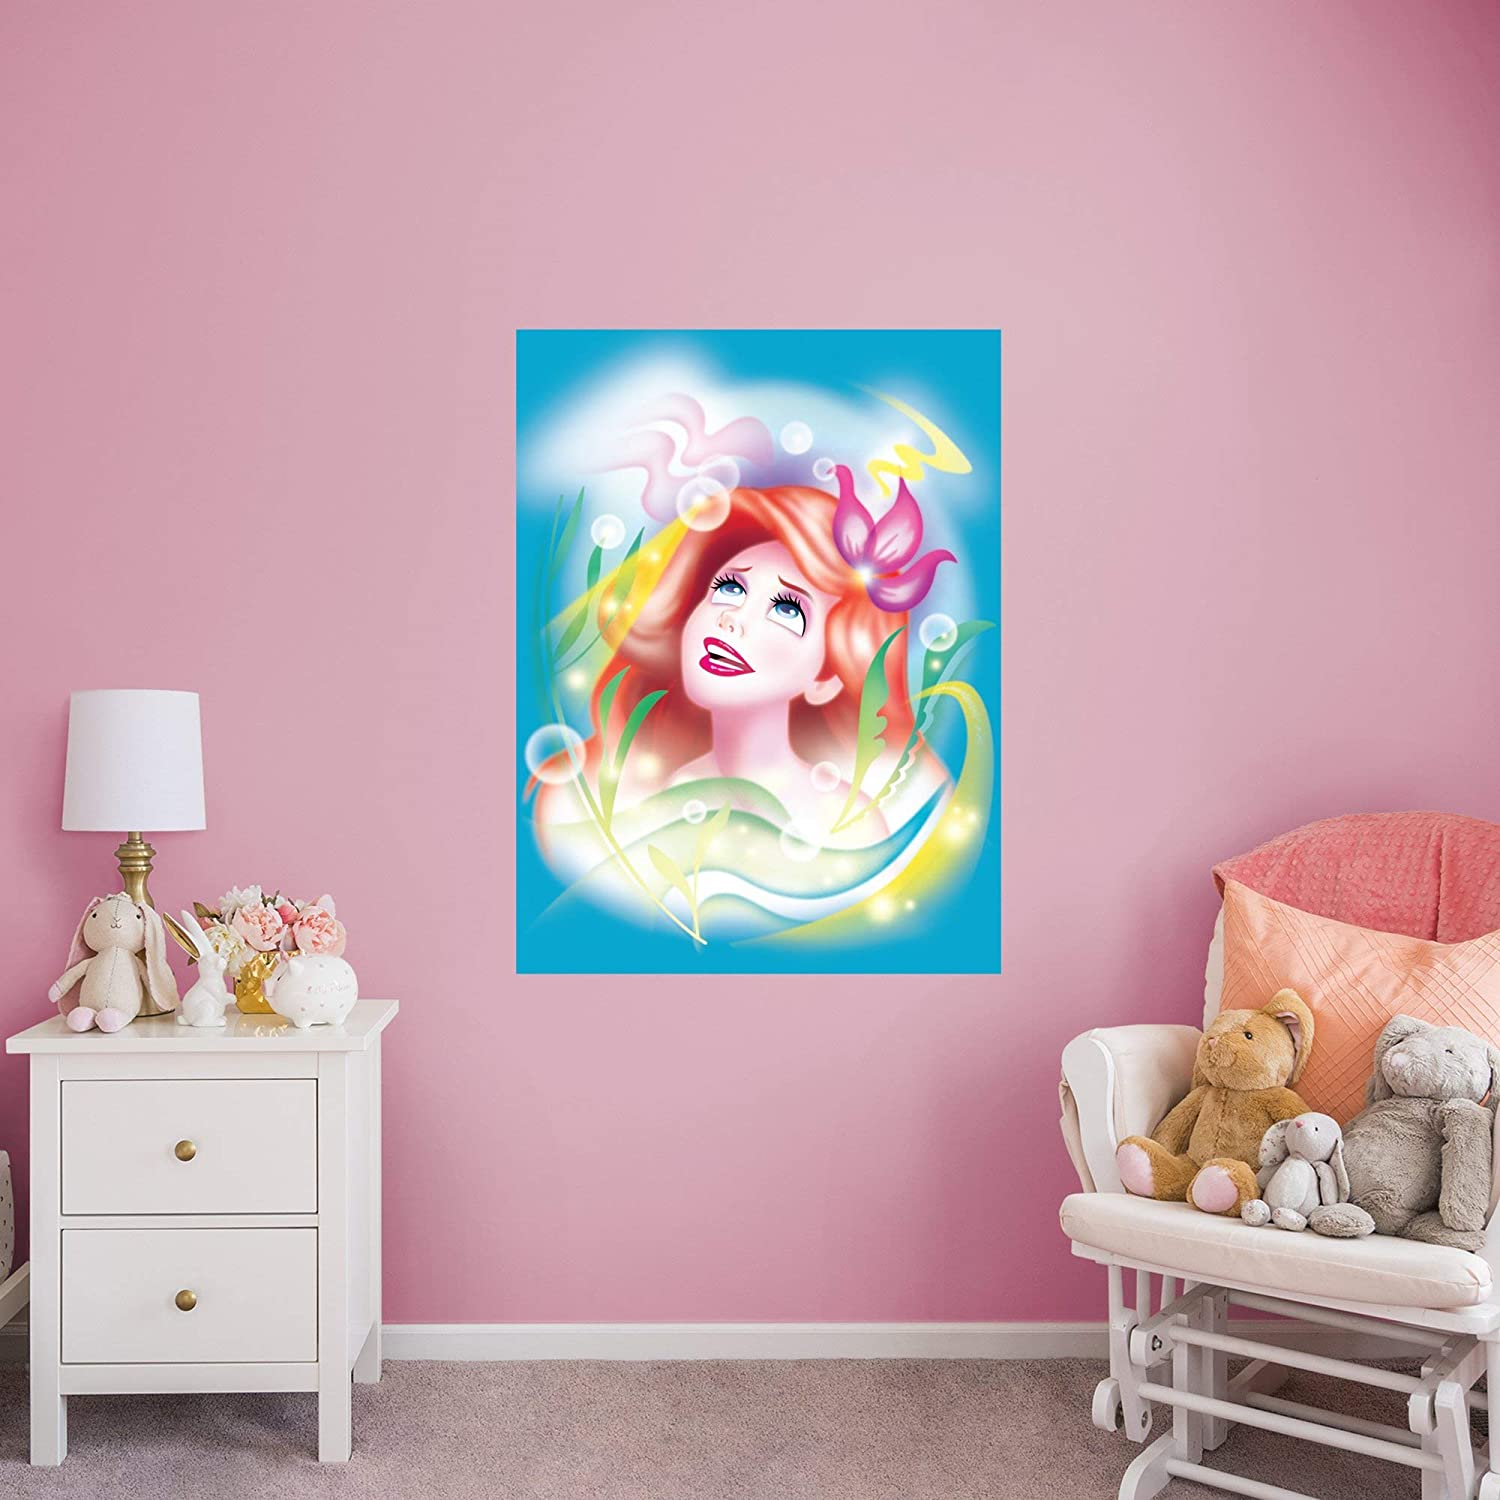 Princess Airbrush Ariel Mural - Financial sales sale Great interest Officially Disney Remov Licensed